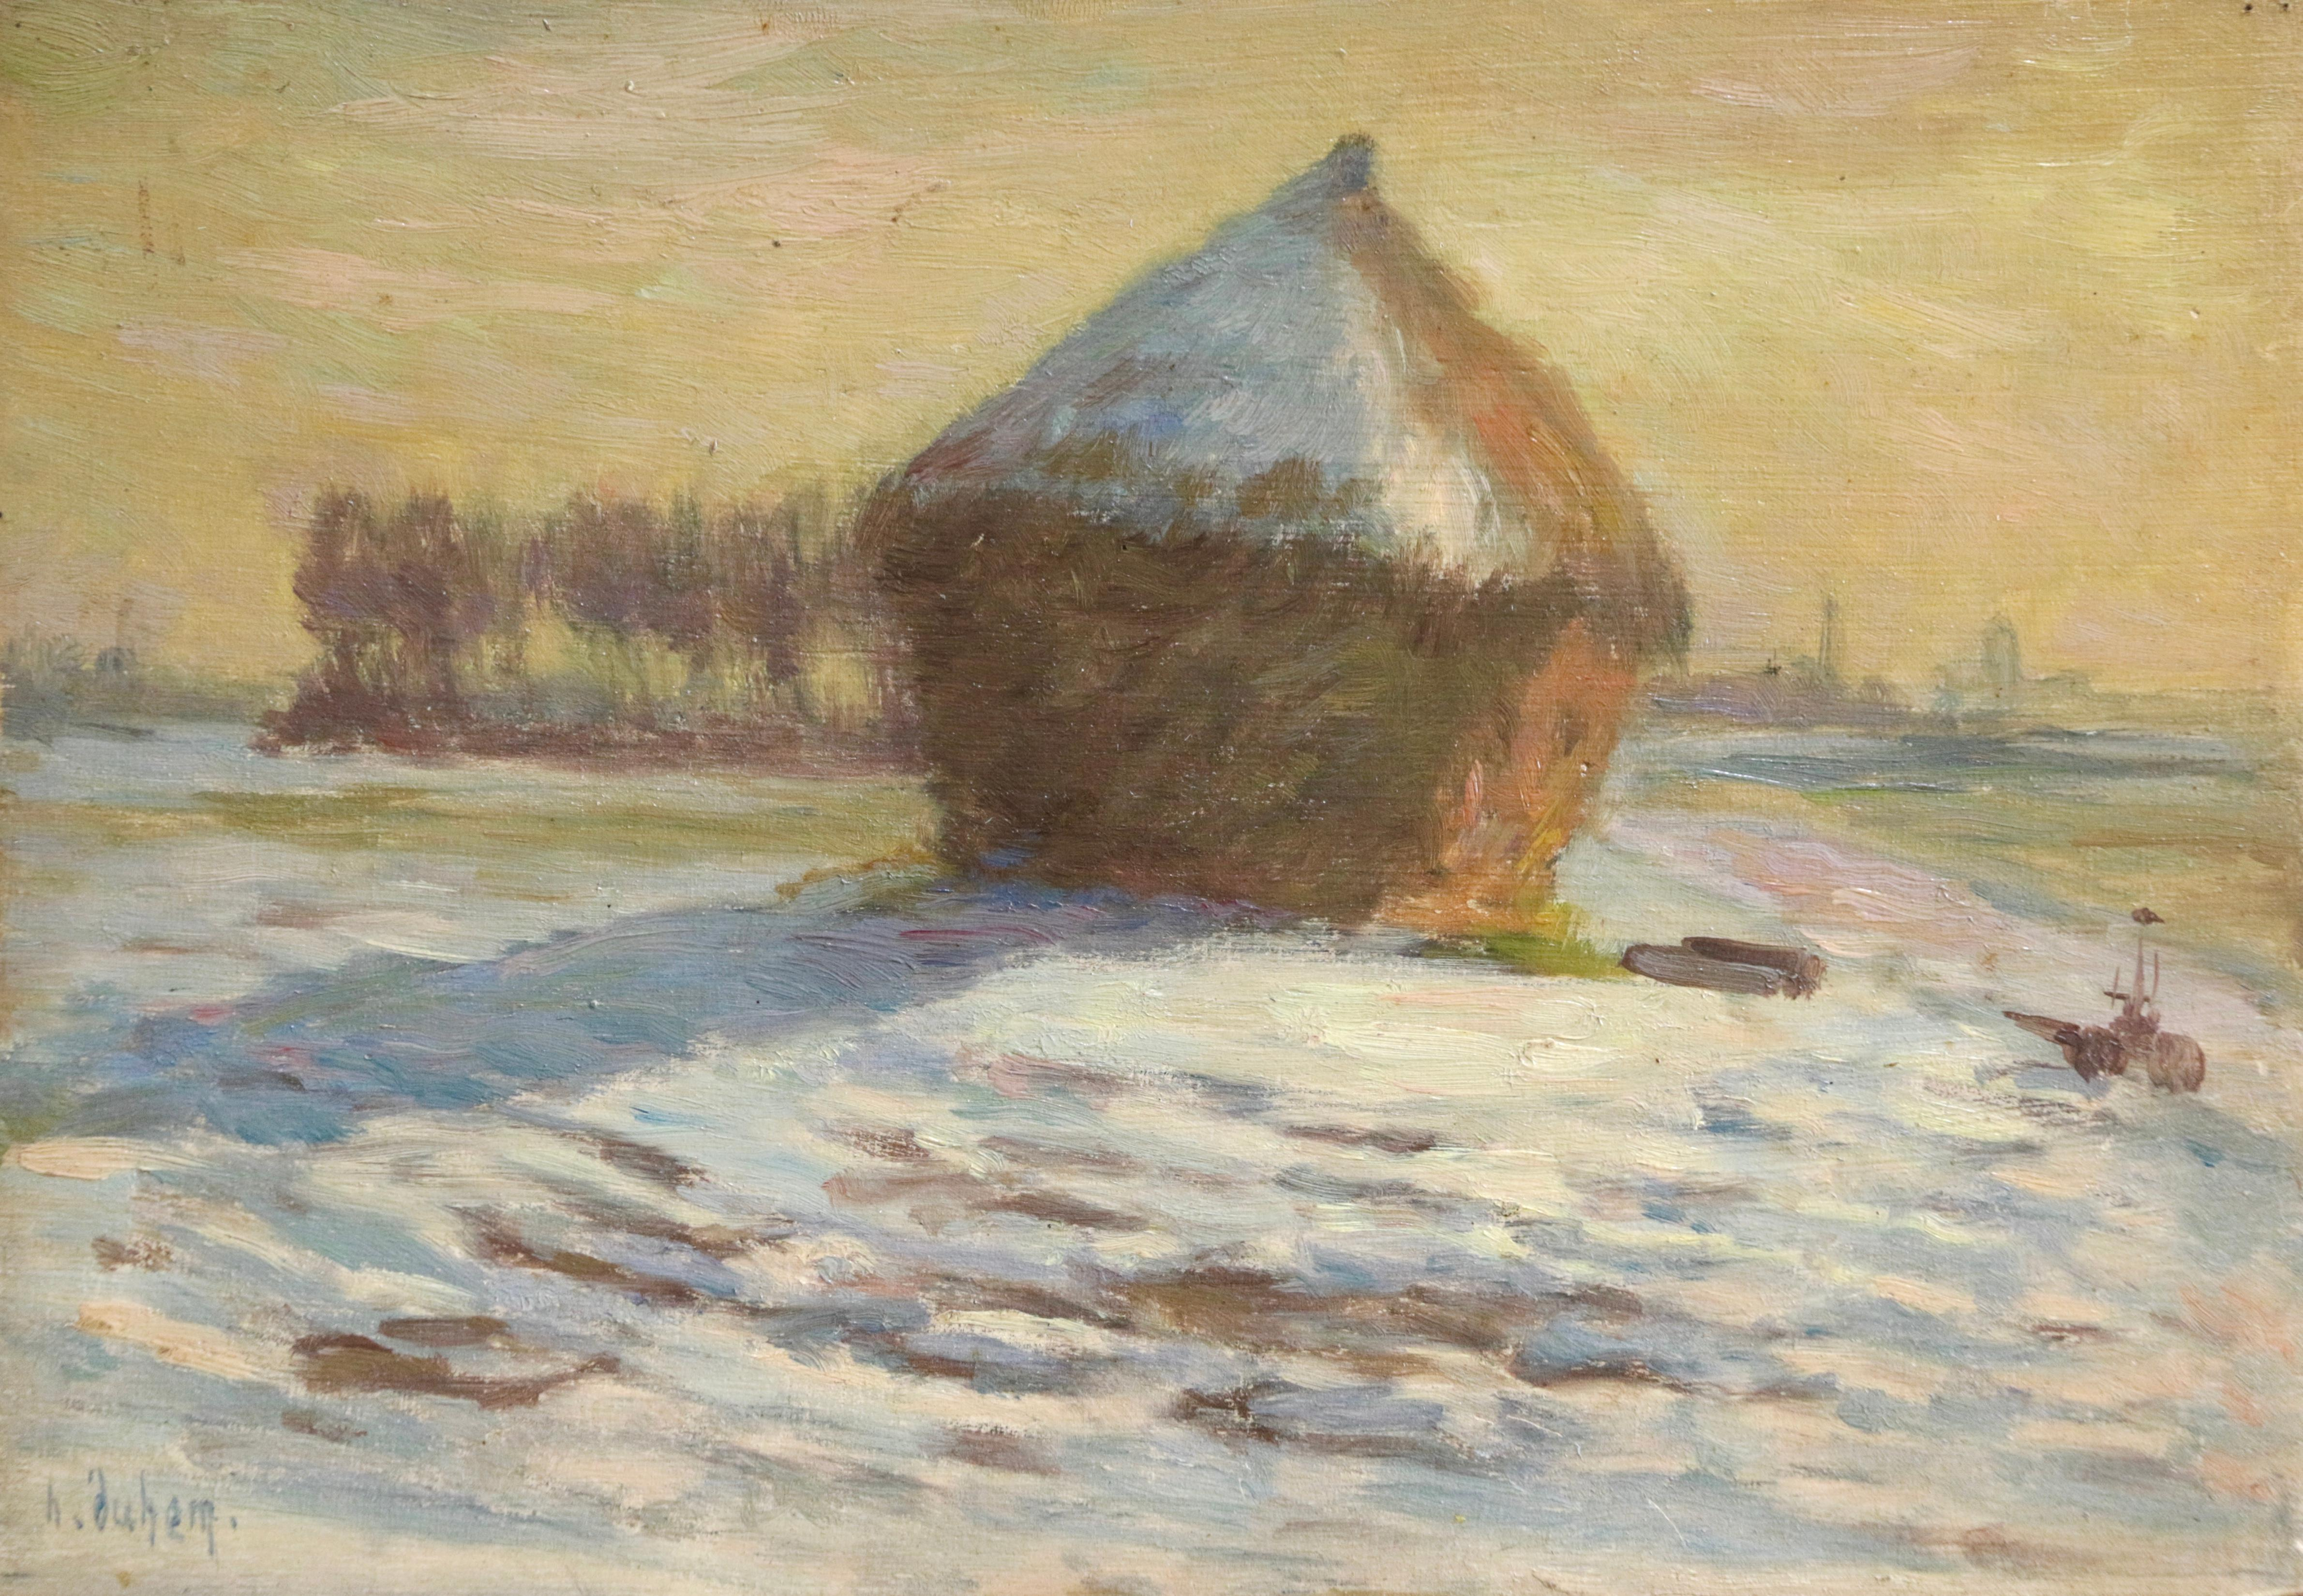 Haystacks - Snow - January 1902 - 19th Century Oil, Winter Landscape by H Duhem